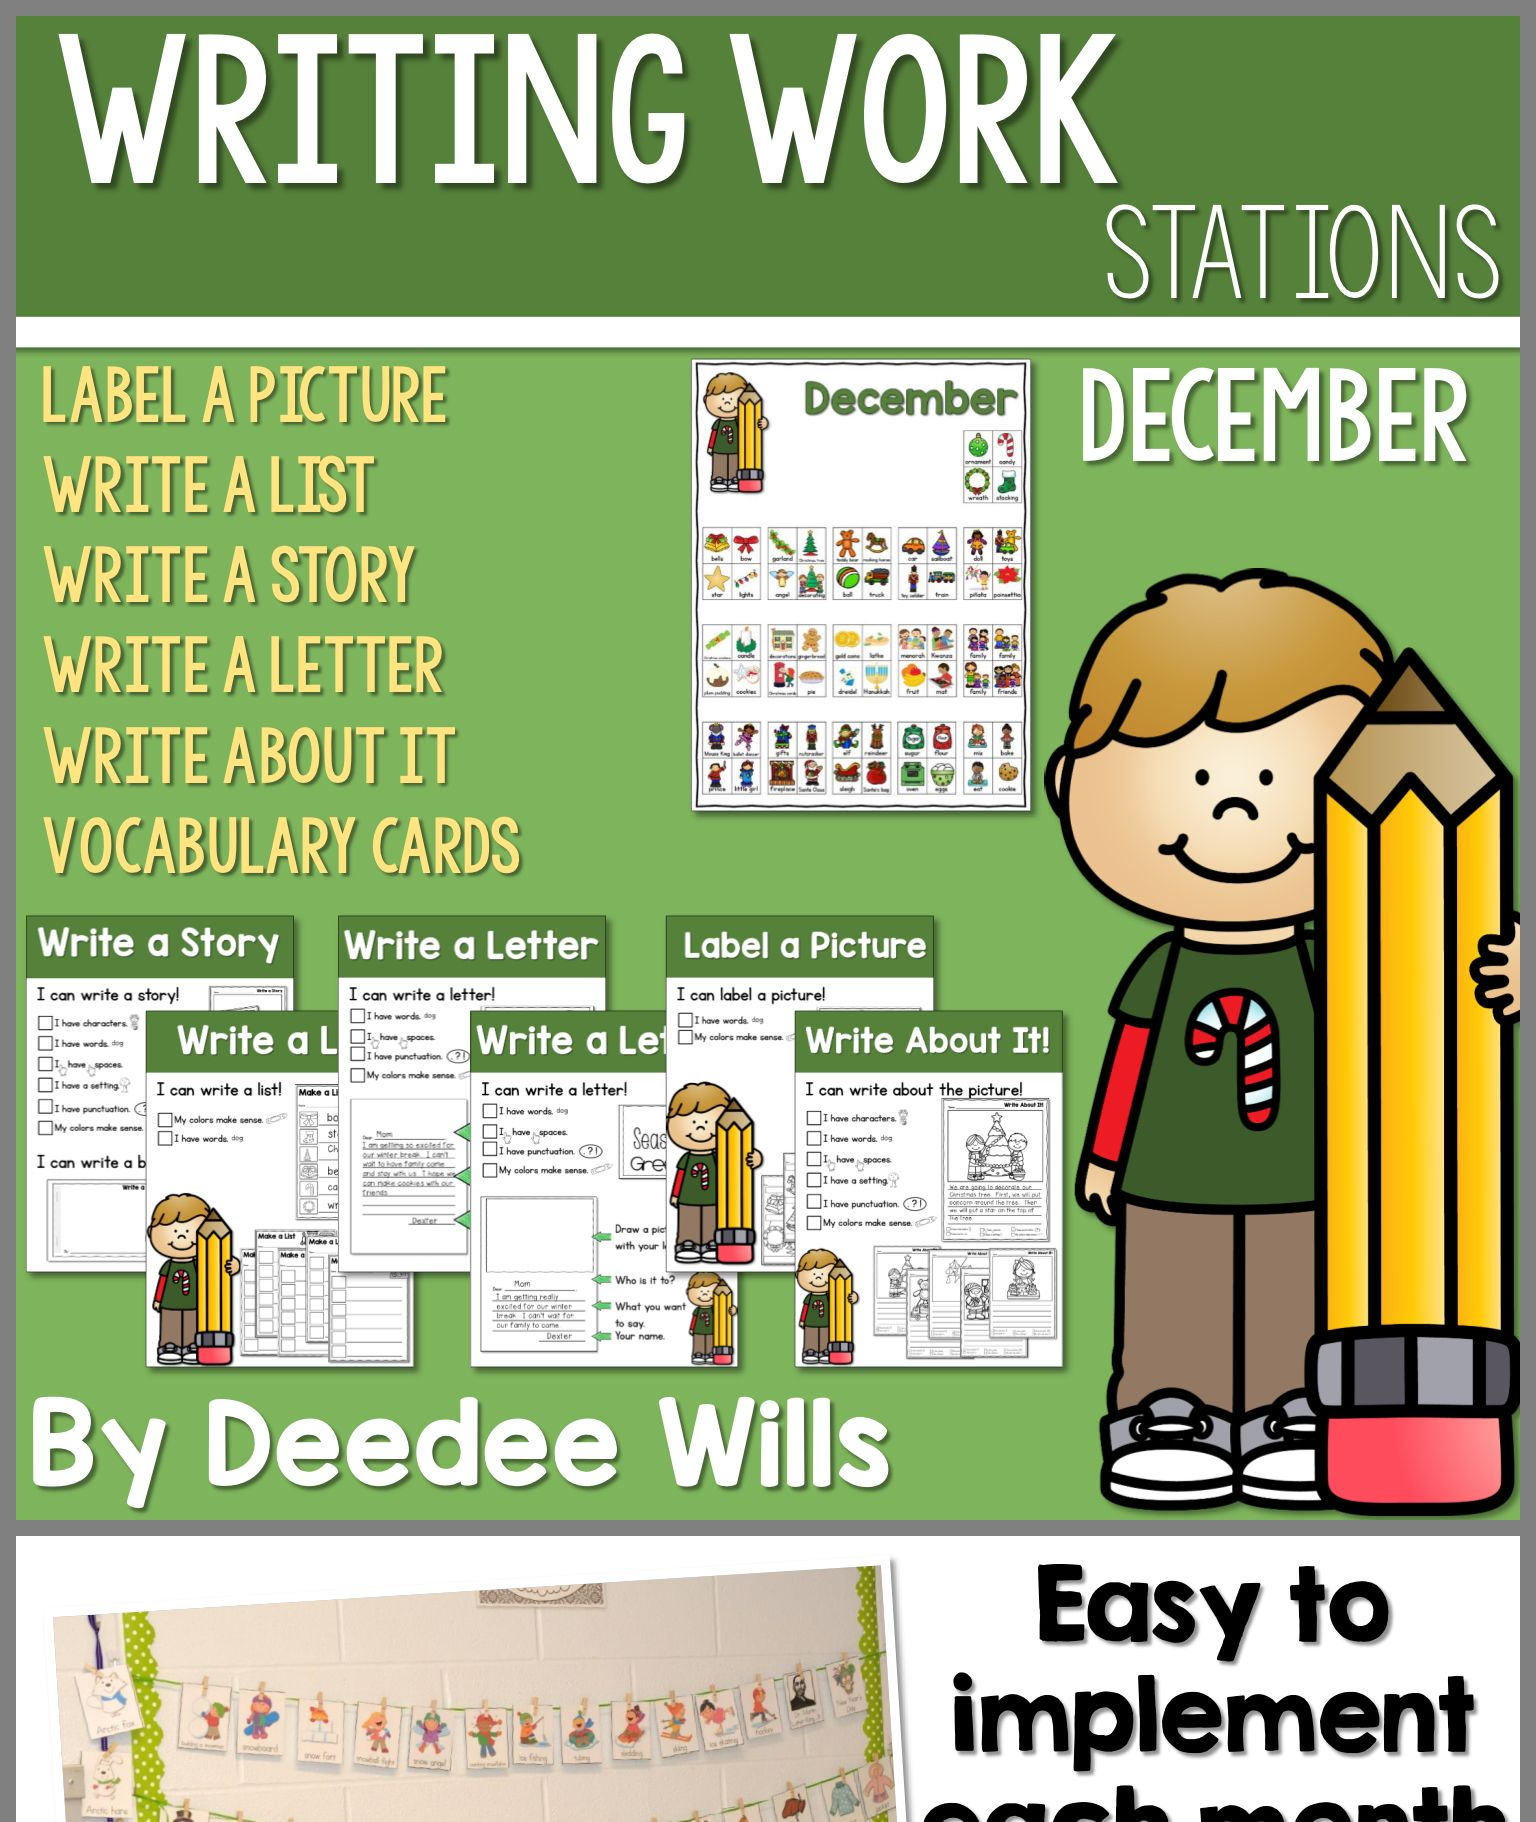 Pin By Debbie Demand On Writing